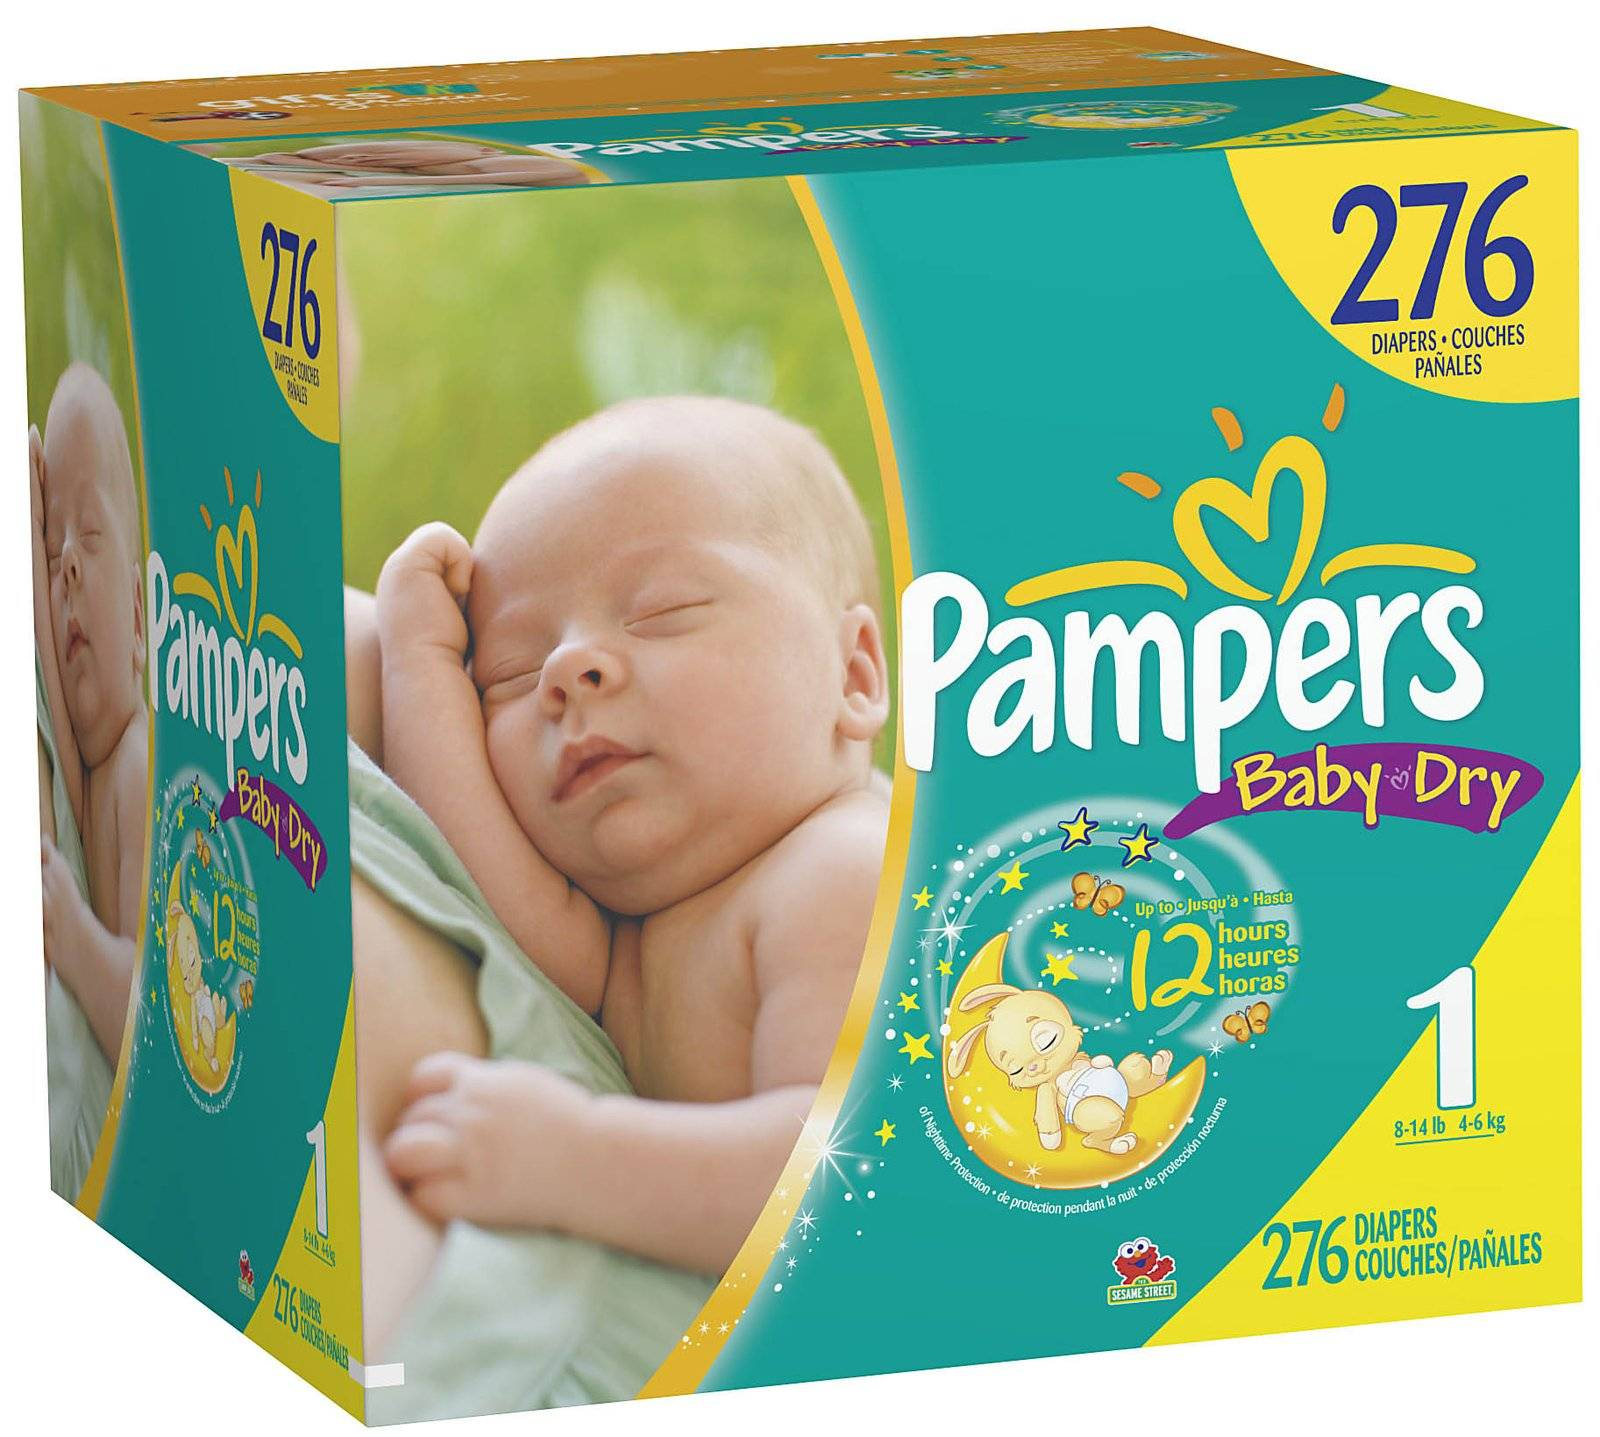 Pampers Baby Dry / Pampers Swaddlers / Pampers Cruisers / Pampers Extra / Pampers Swaddlers/ Pampers